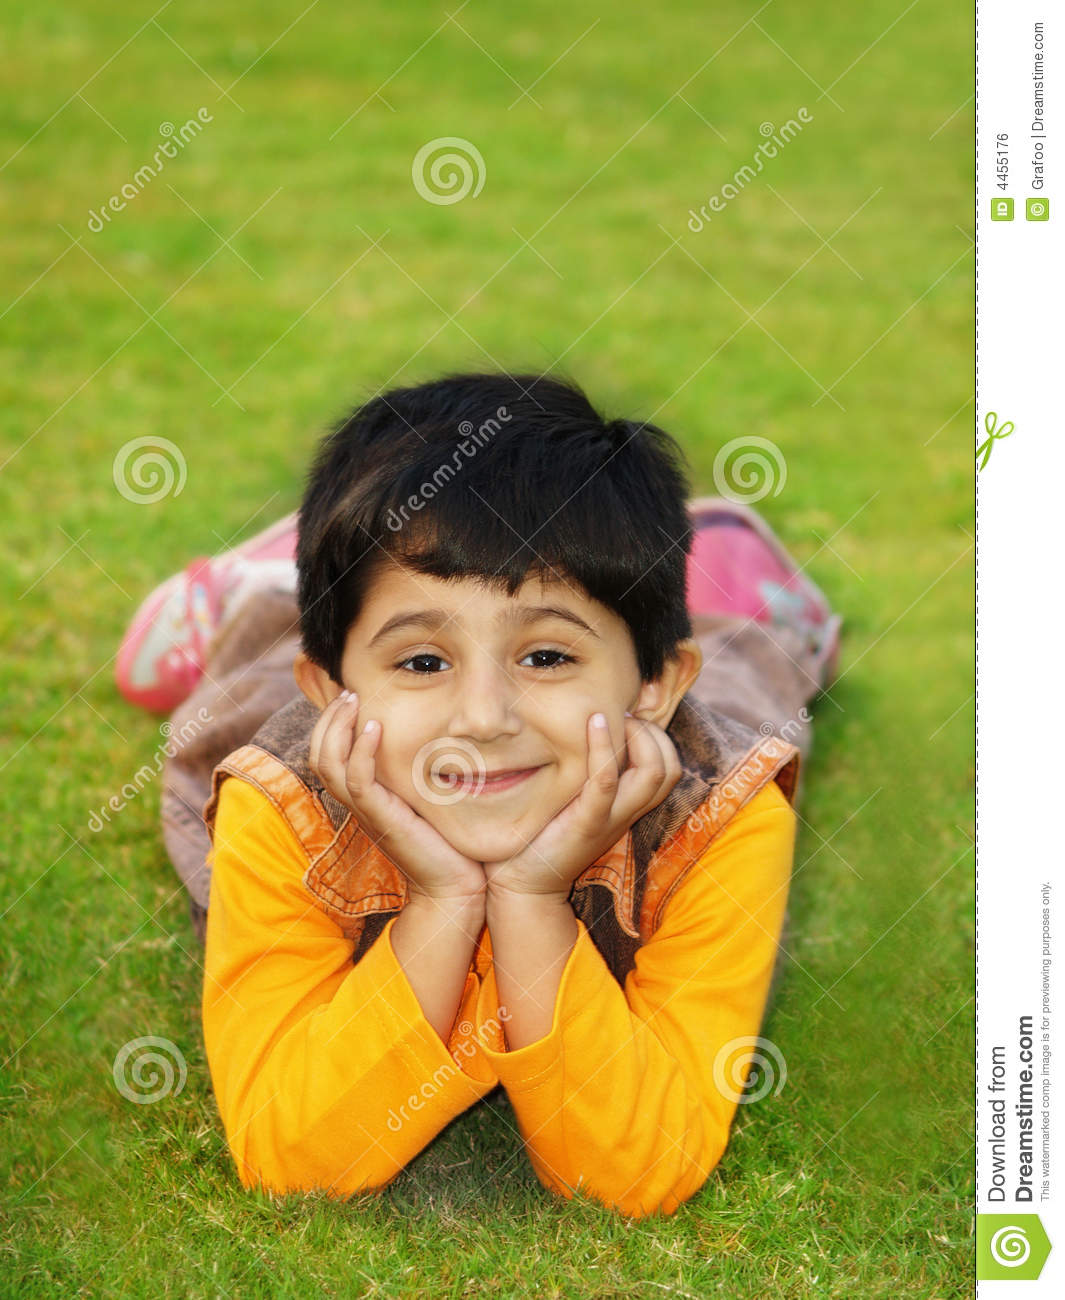 Girl smiles laying on grass royalty free stock image for Pretty grass